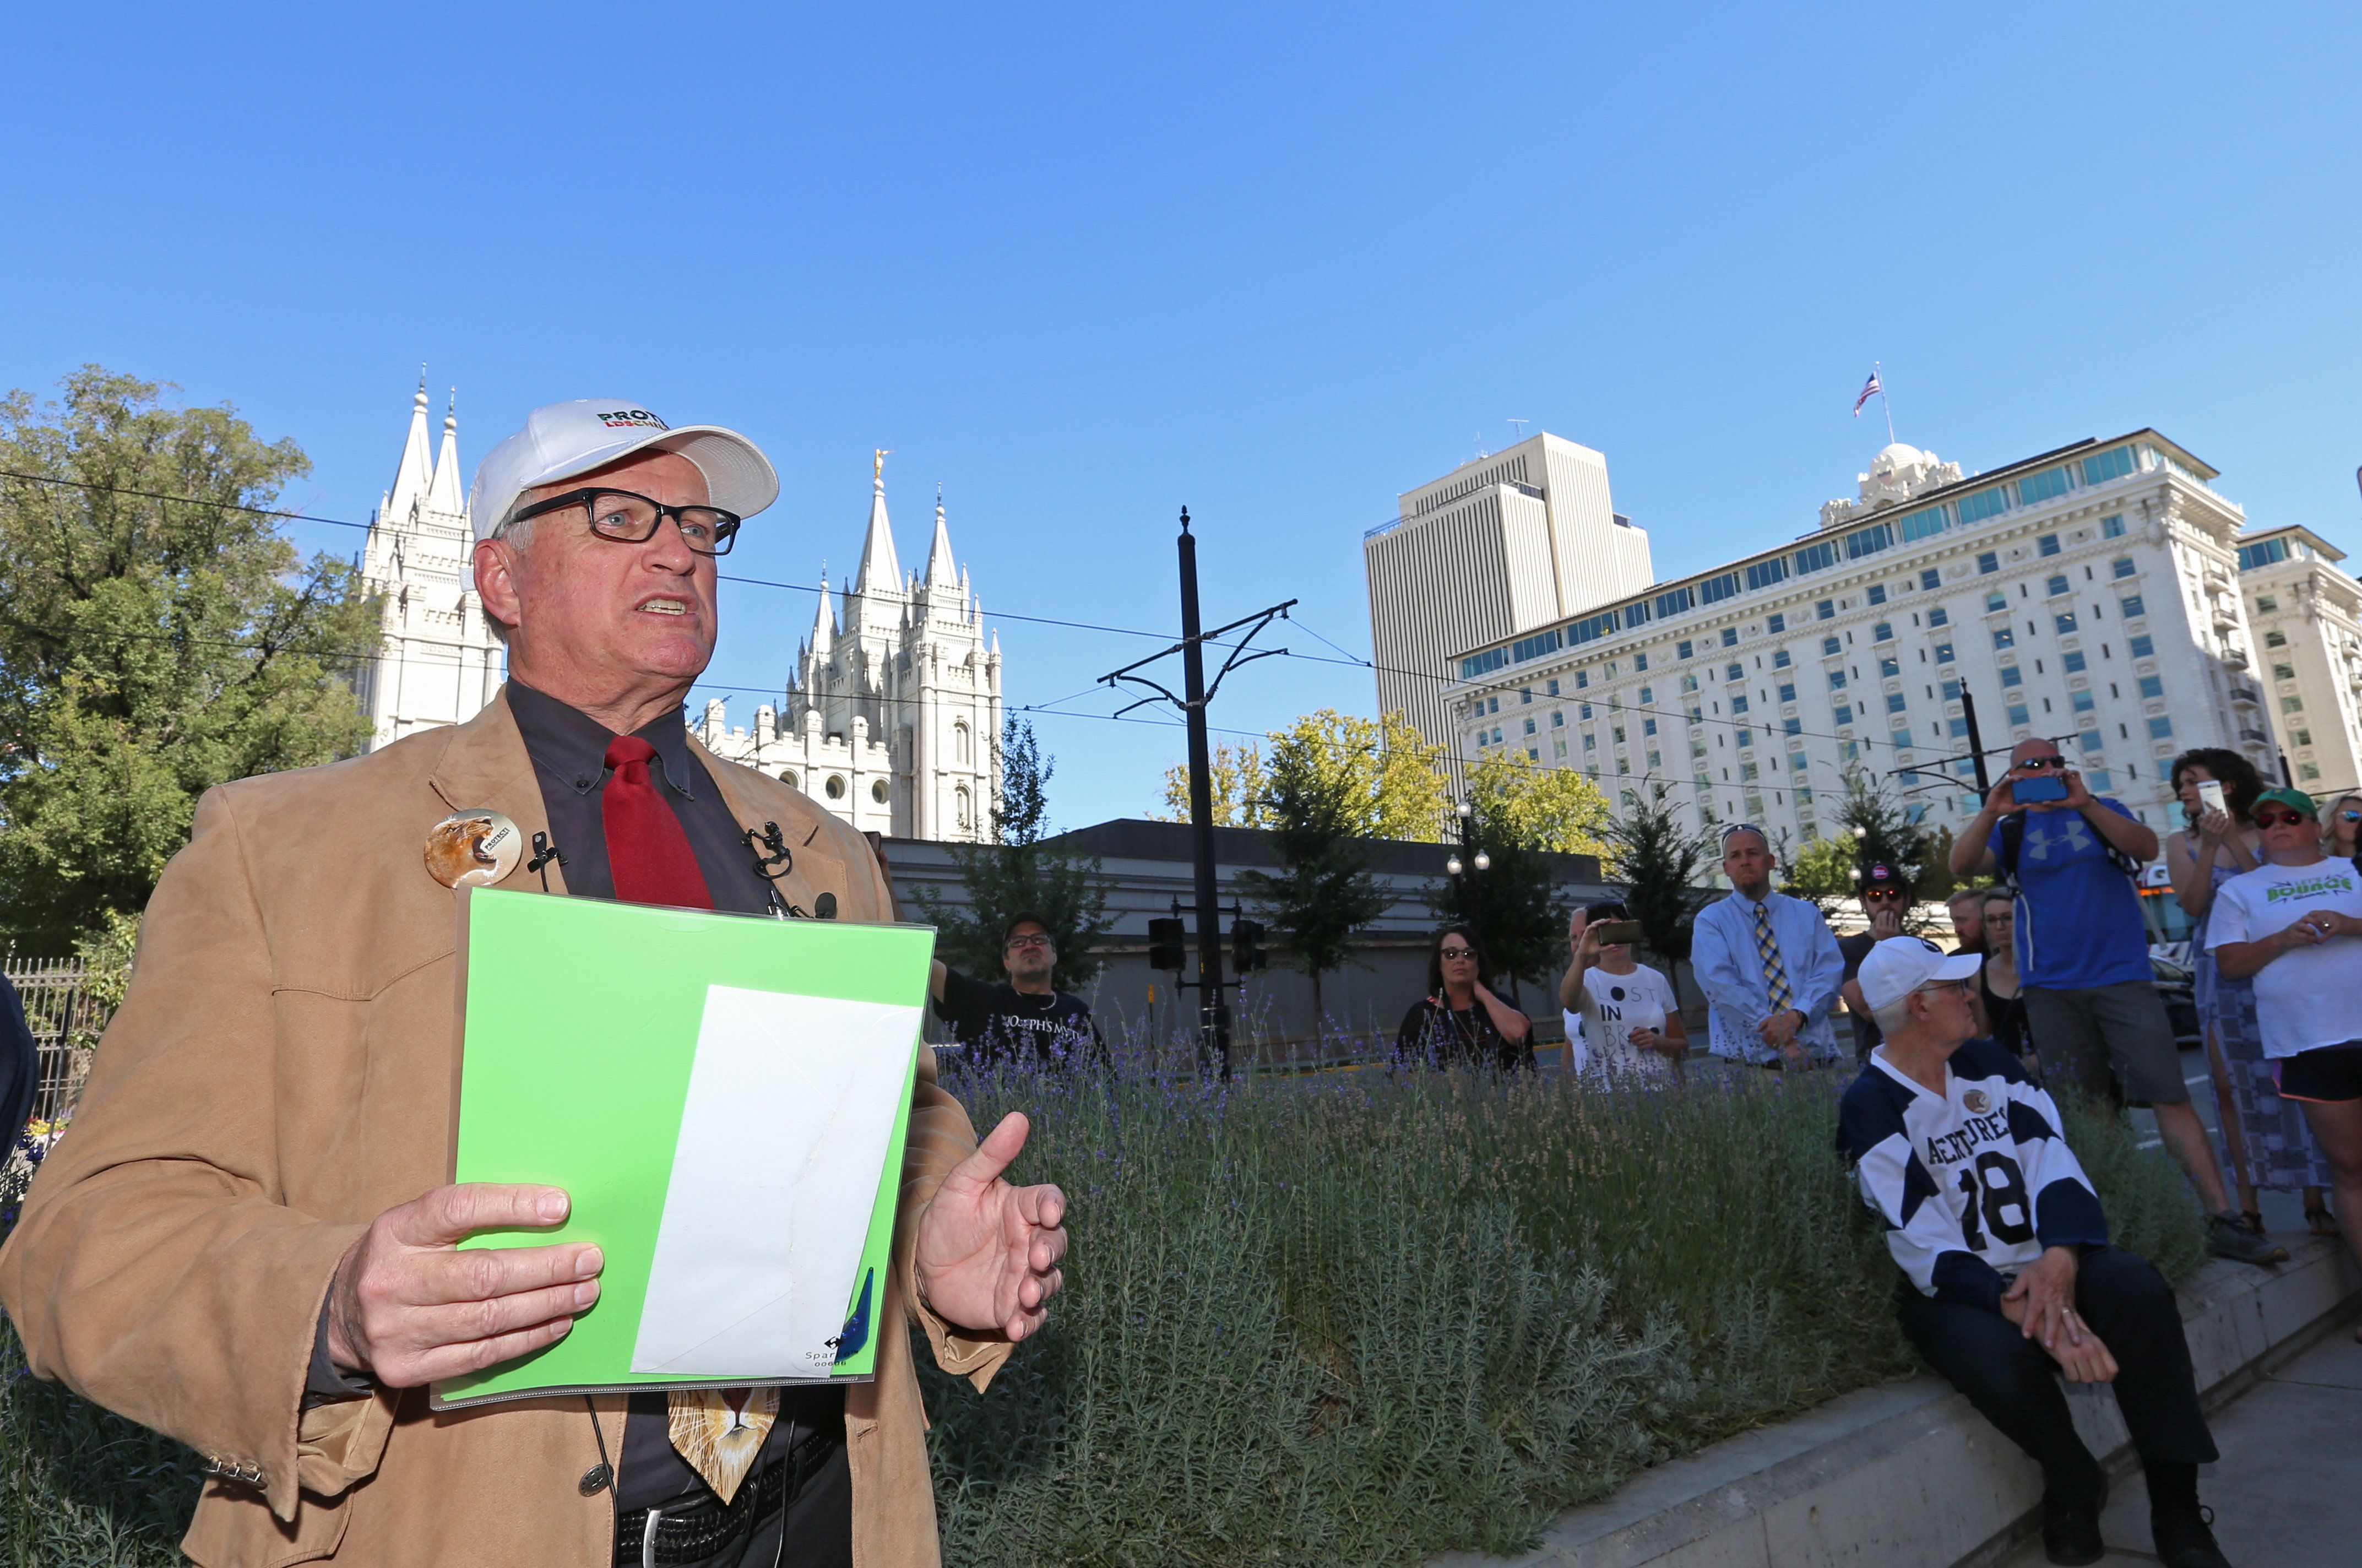 SALT LAKE CITY, UT - SEPTEMBER 16: Sam Young, former Mormon bishop and founder of Protect the Children, talks to supporters before he opens a letter to find out if he has been excommunicated from the Church of Jesus Christ of Latter-Day Saints, across the street from the world headquarters of the Mormon church, on September 16, 2018 in Salt Lake City, Utah. Young was excommunicated from the Mormon church after he started to protest and demanded sexual explicit interviews with children by Mormon Church Leaders to stop.   (Photo by George Frey/Getty Images)